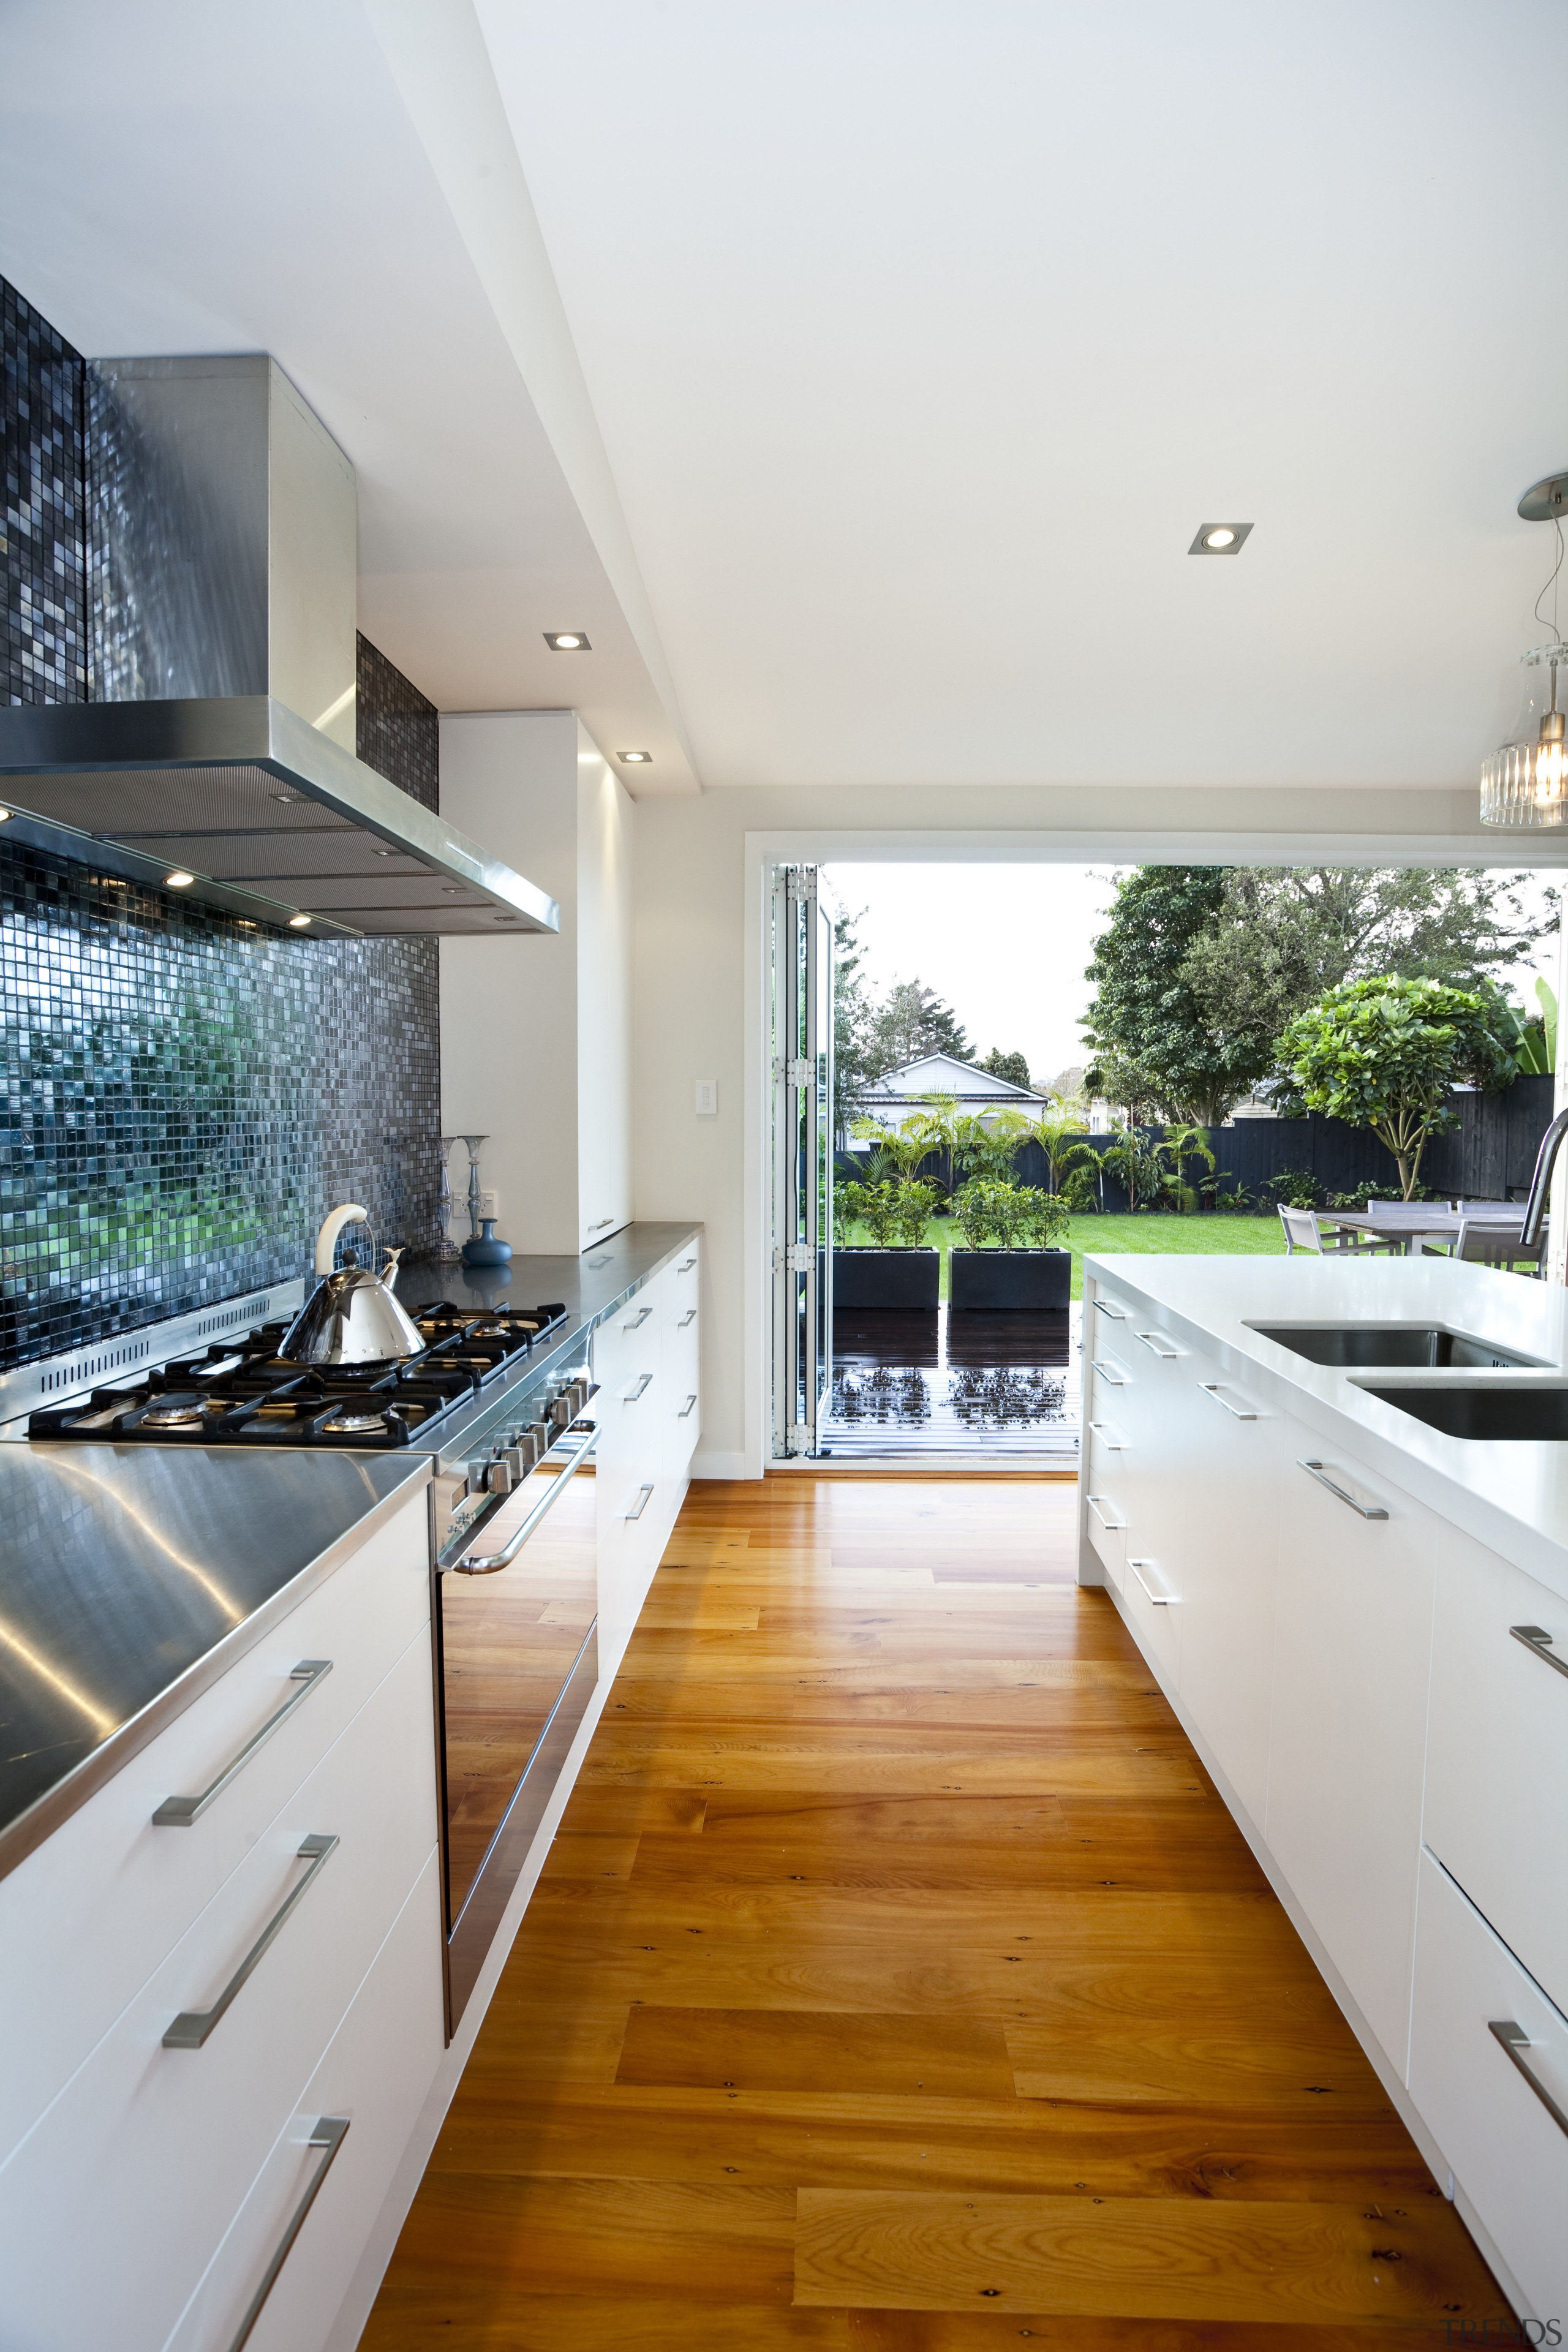 Kitchen designed by Yellow Fox, manufactured by Quality architecture, countertop, daylighting, floor, flooring, hardwood, home, house, interior design, kitchen, property, real estate, room, window, wood flooring, gray, white